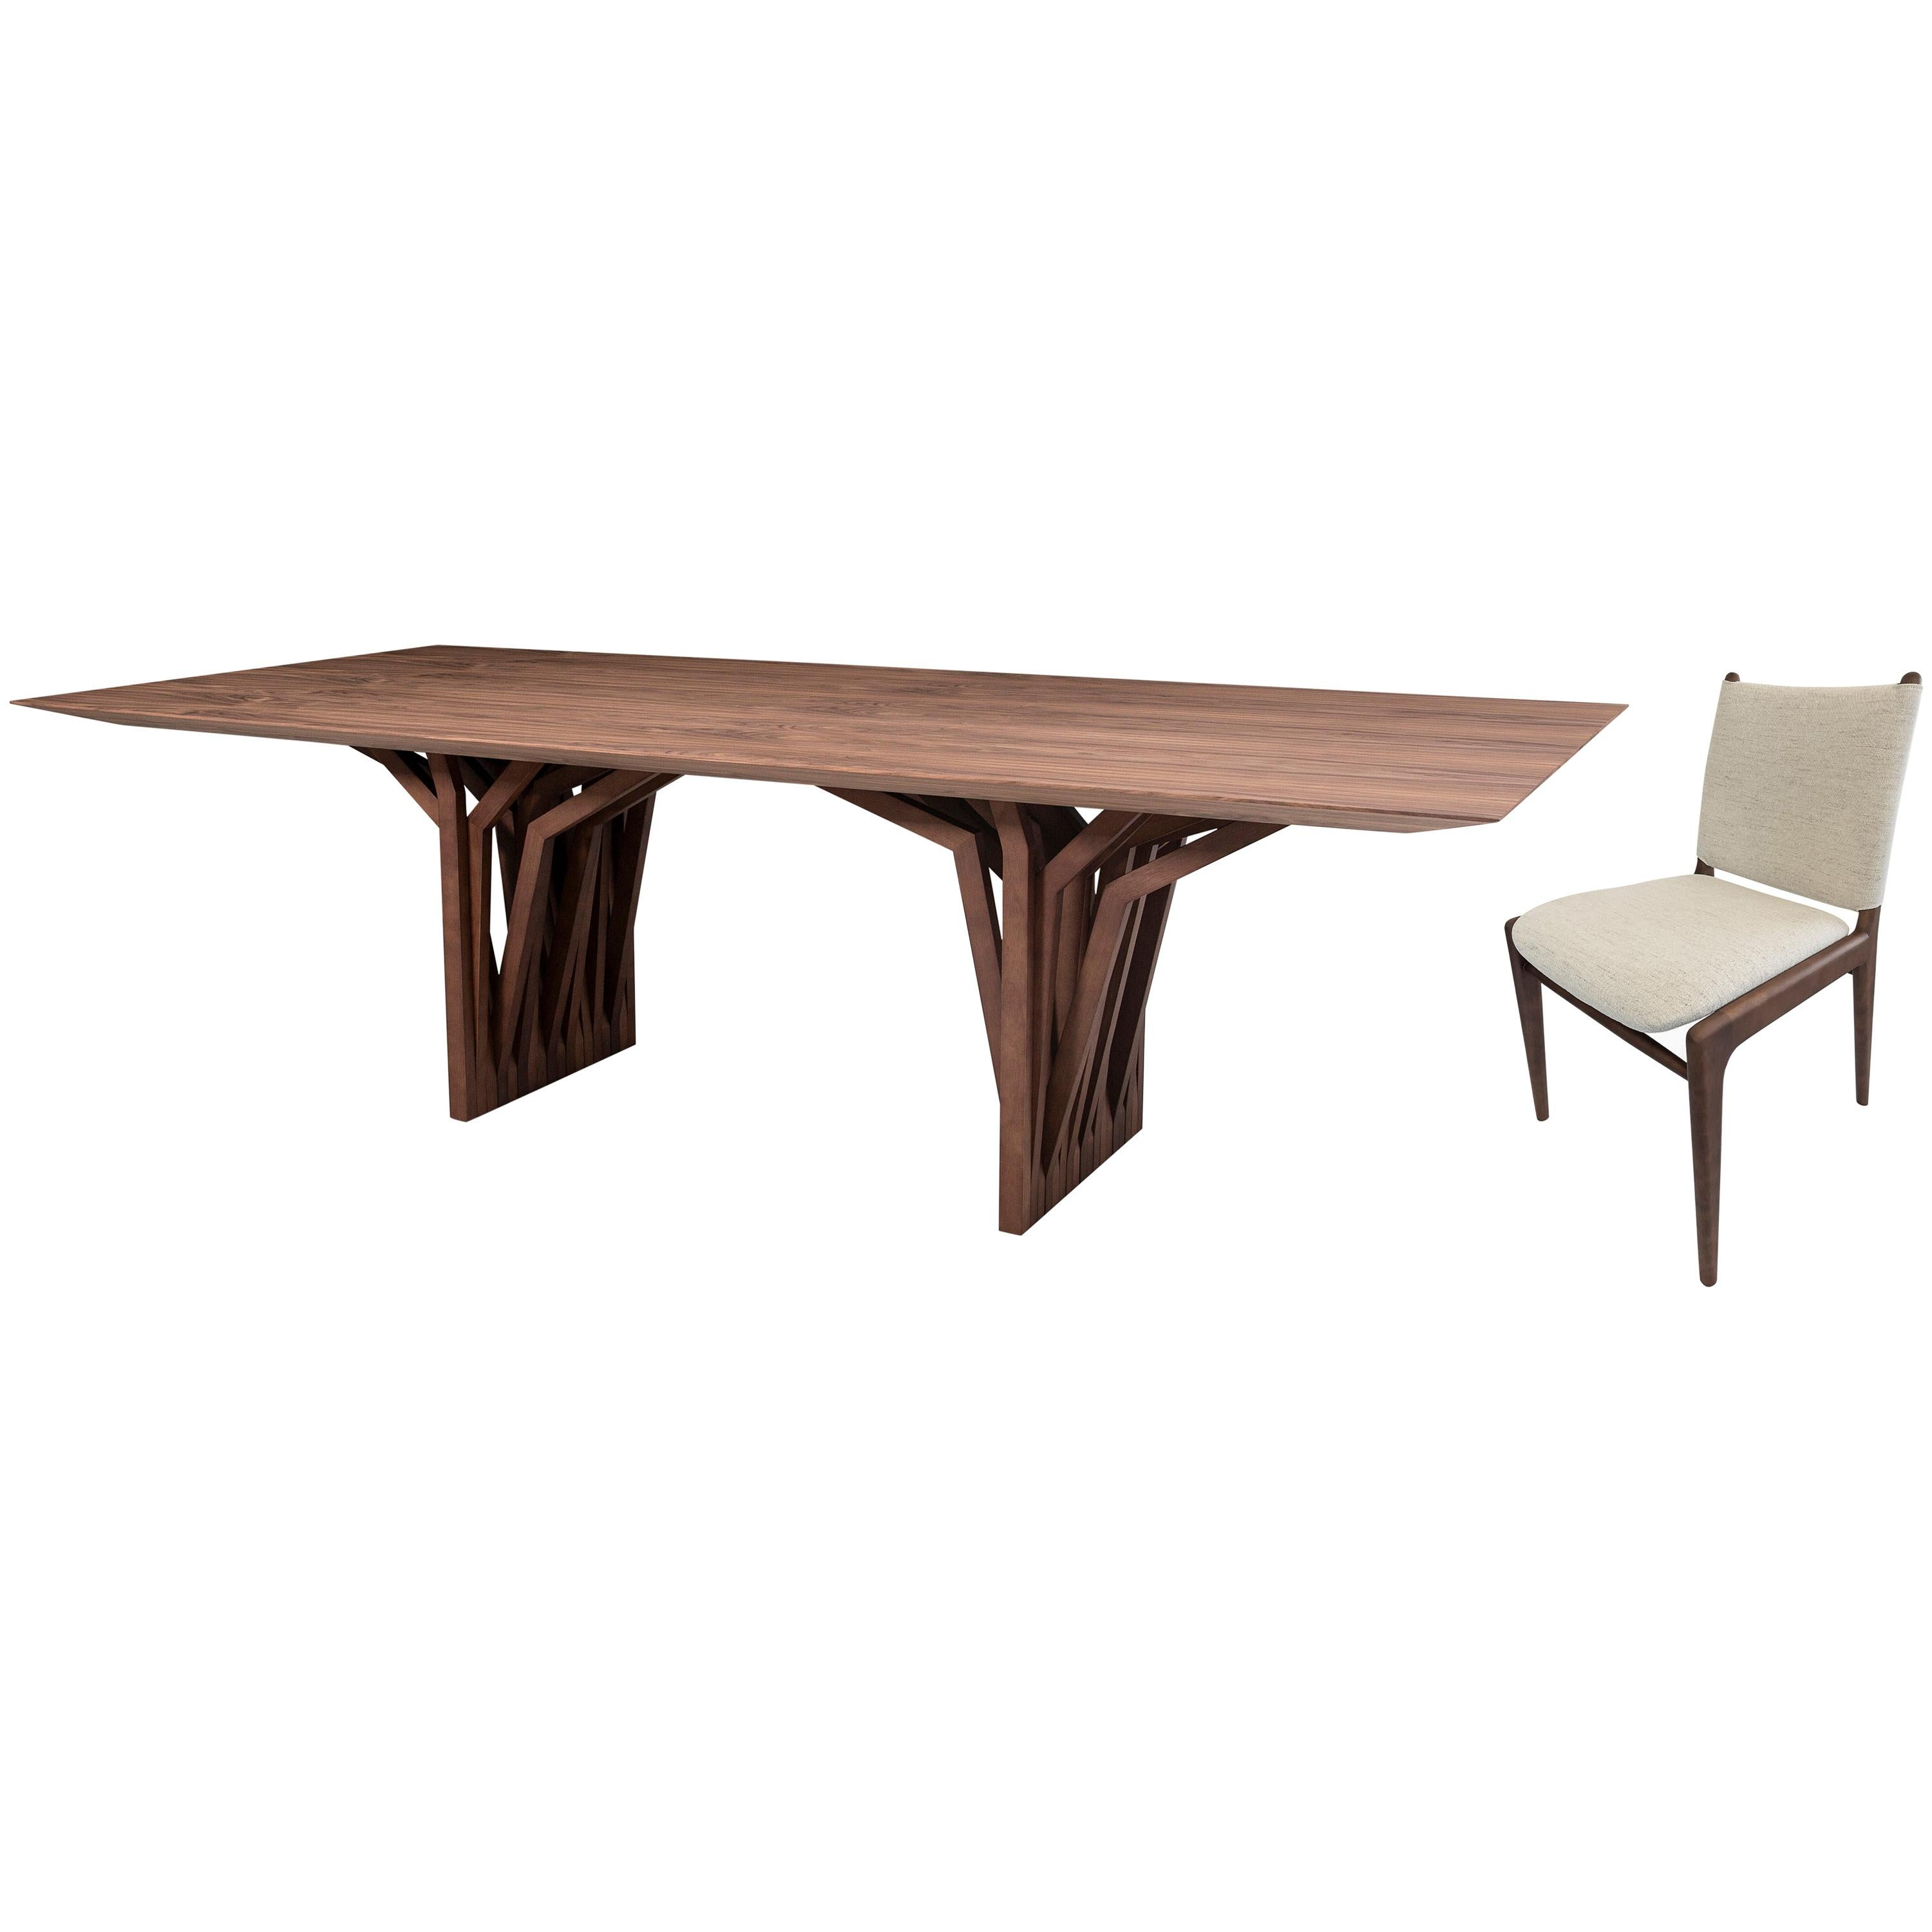 Radi Dining Table and Ten Cappio Chairs in Walnut, Set